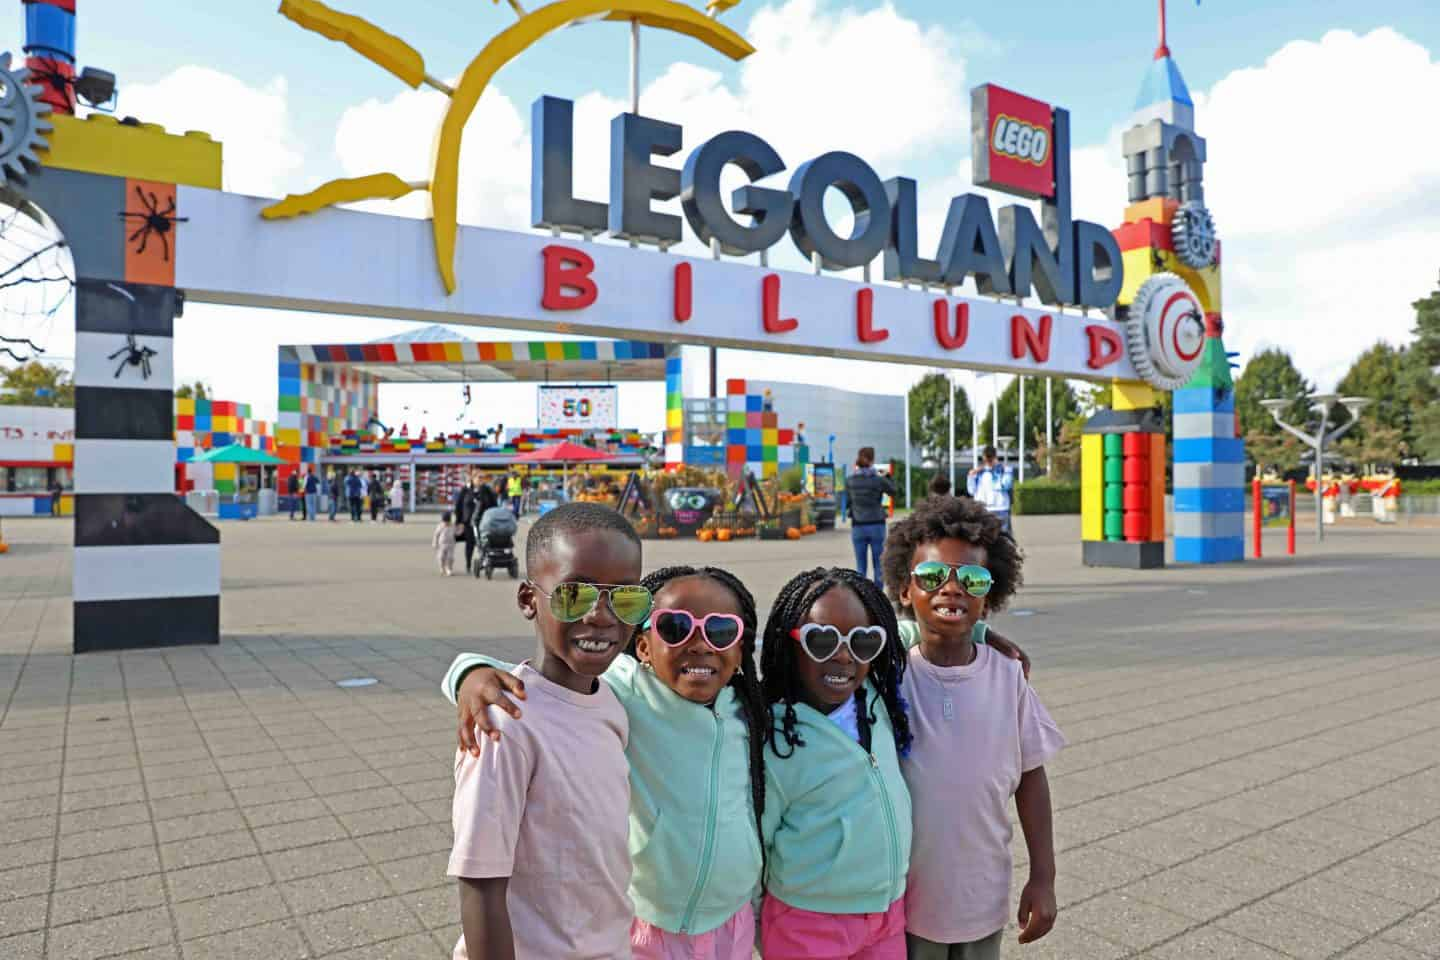 Billund Denmark With Kids: The Original Legoland Theme Park and Lego House